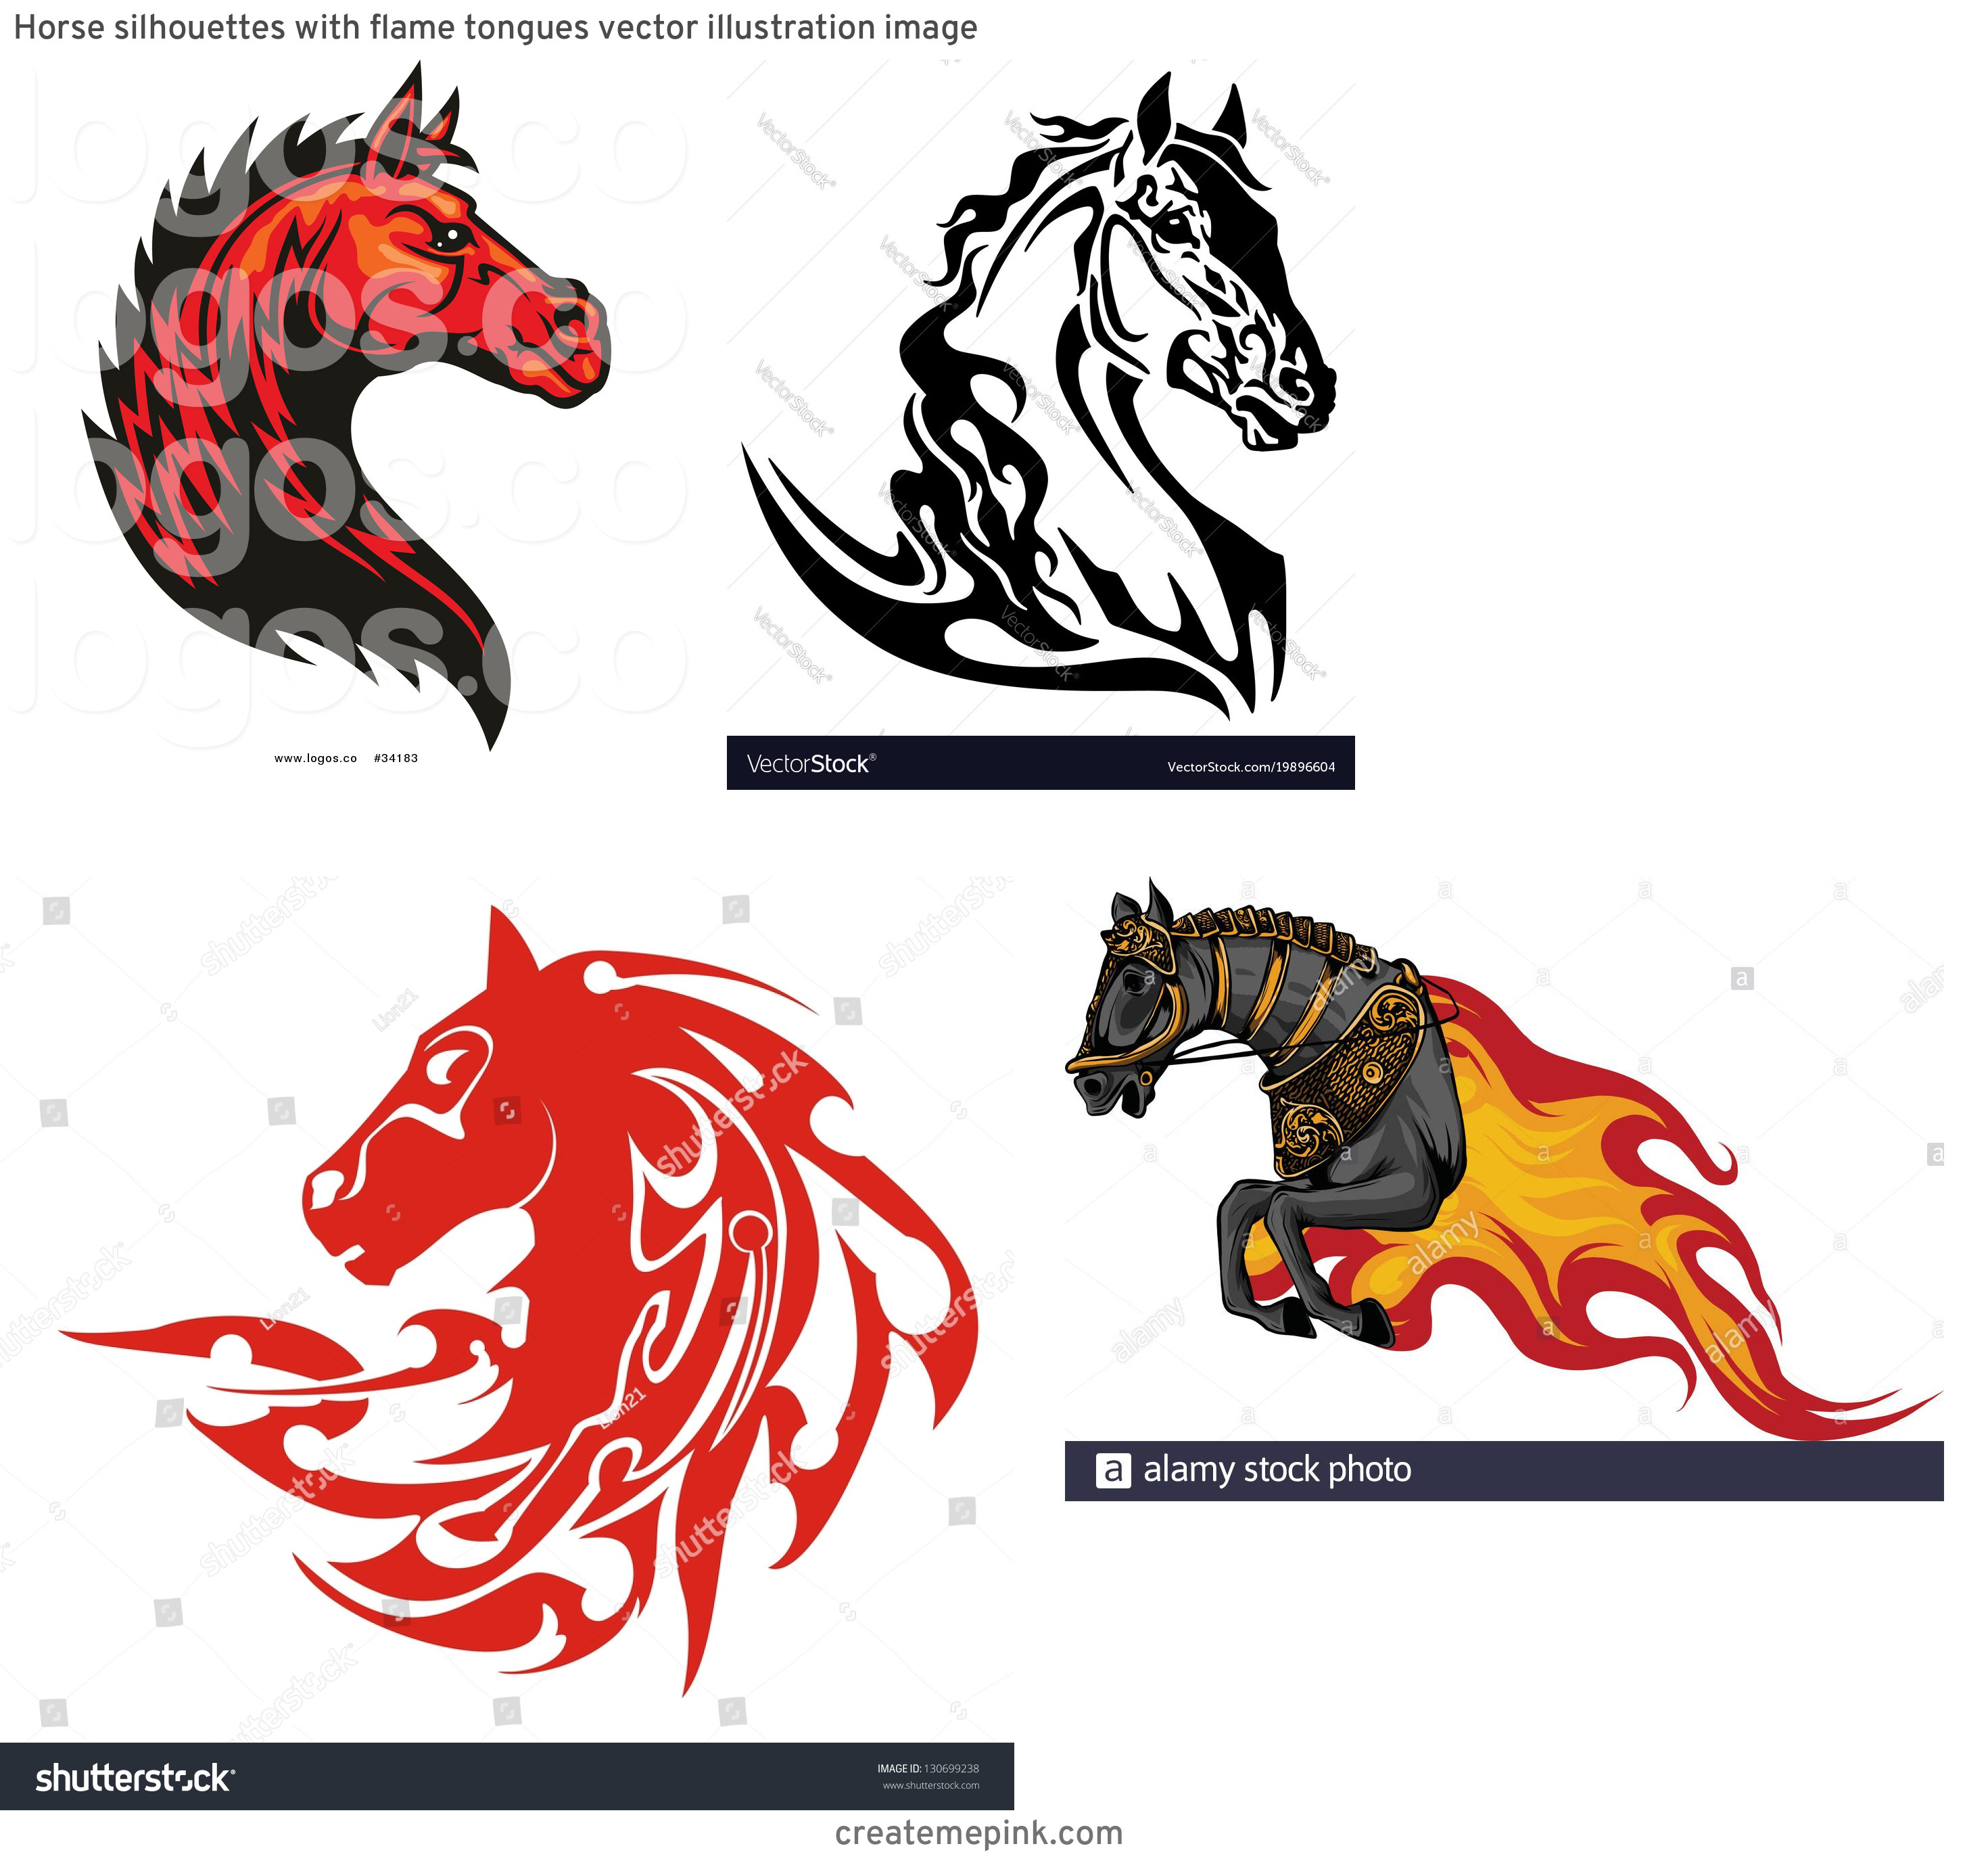 Horse With Flames Vector: Horse Silhouettes With Flame Tongues Vector Illustration Image